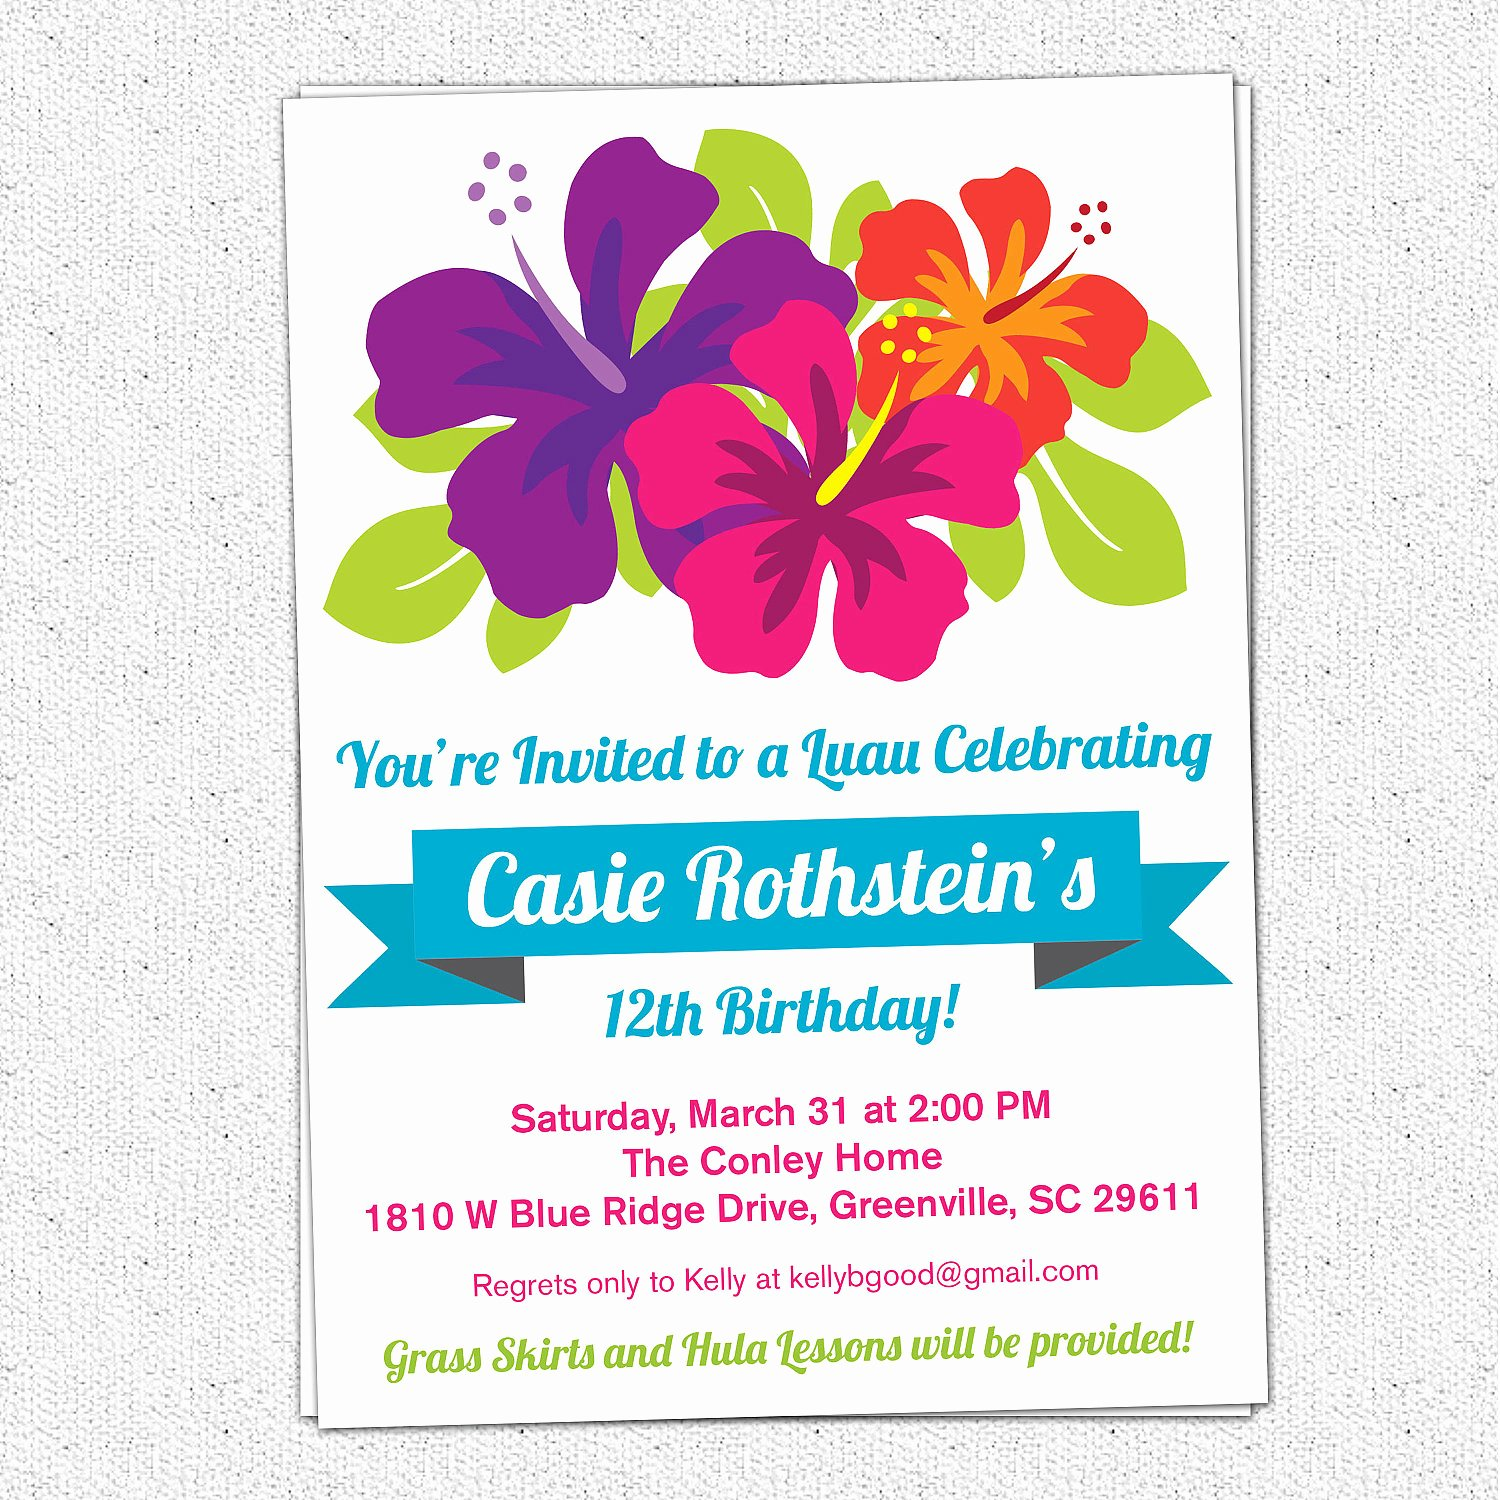 Summer Party Invitation Wording New Luau Birthday Invitations Summer Party Hibiscus Flowers